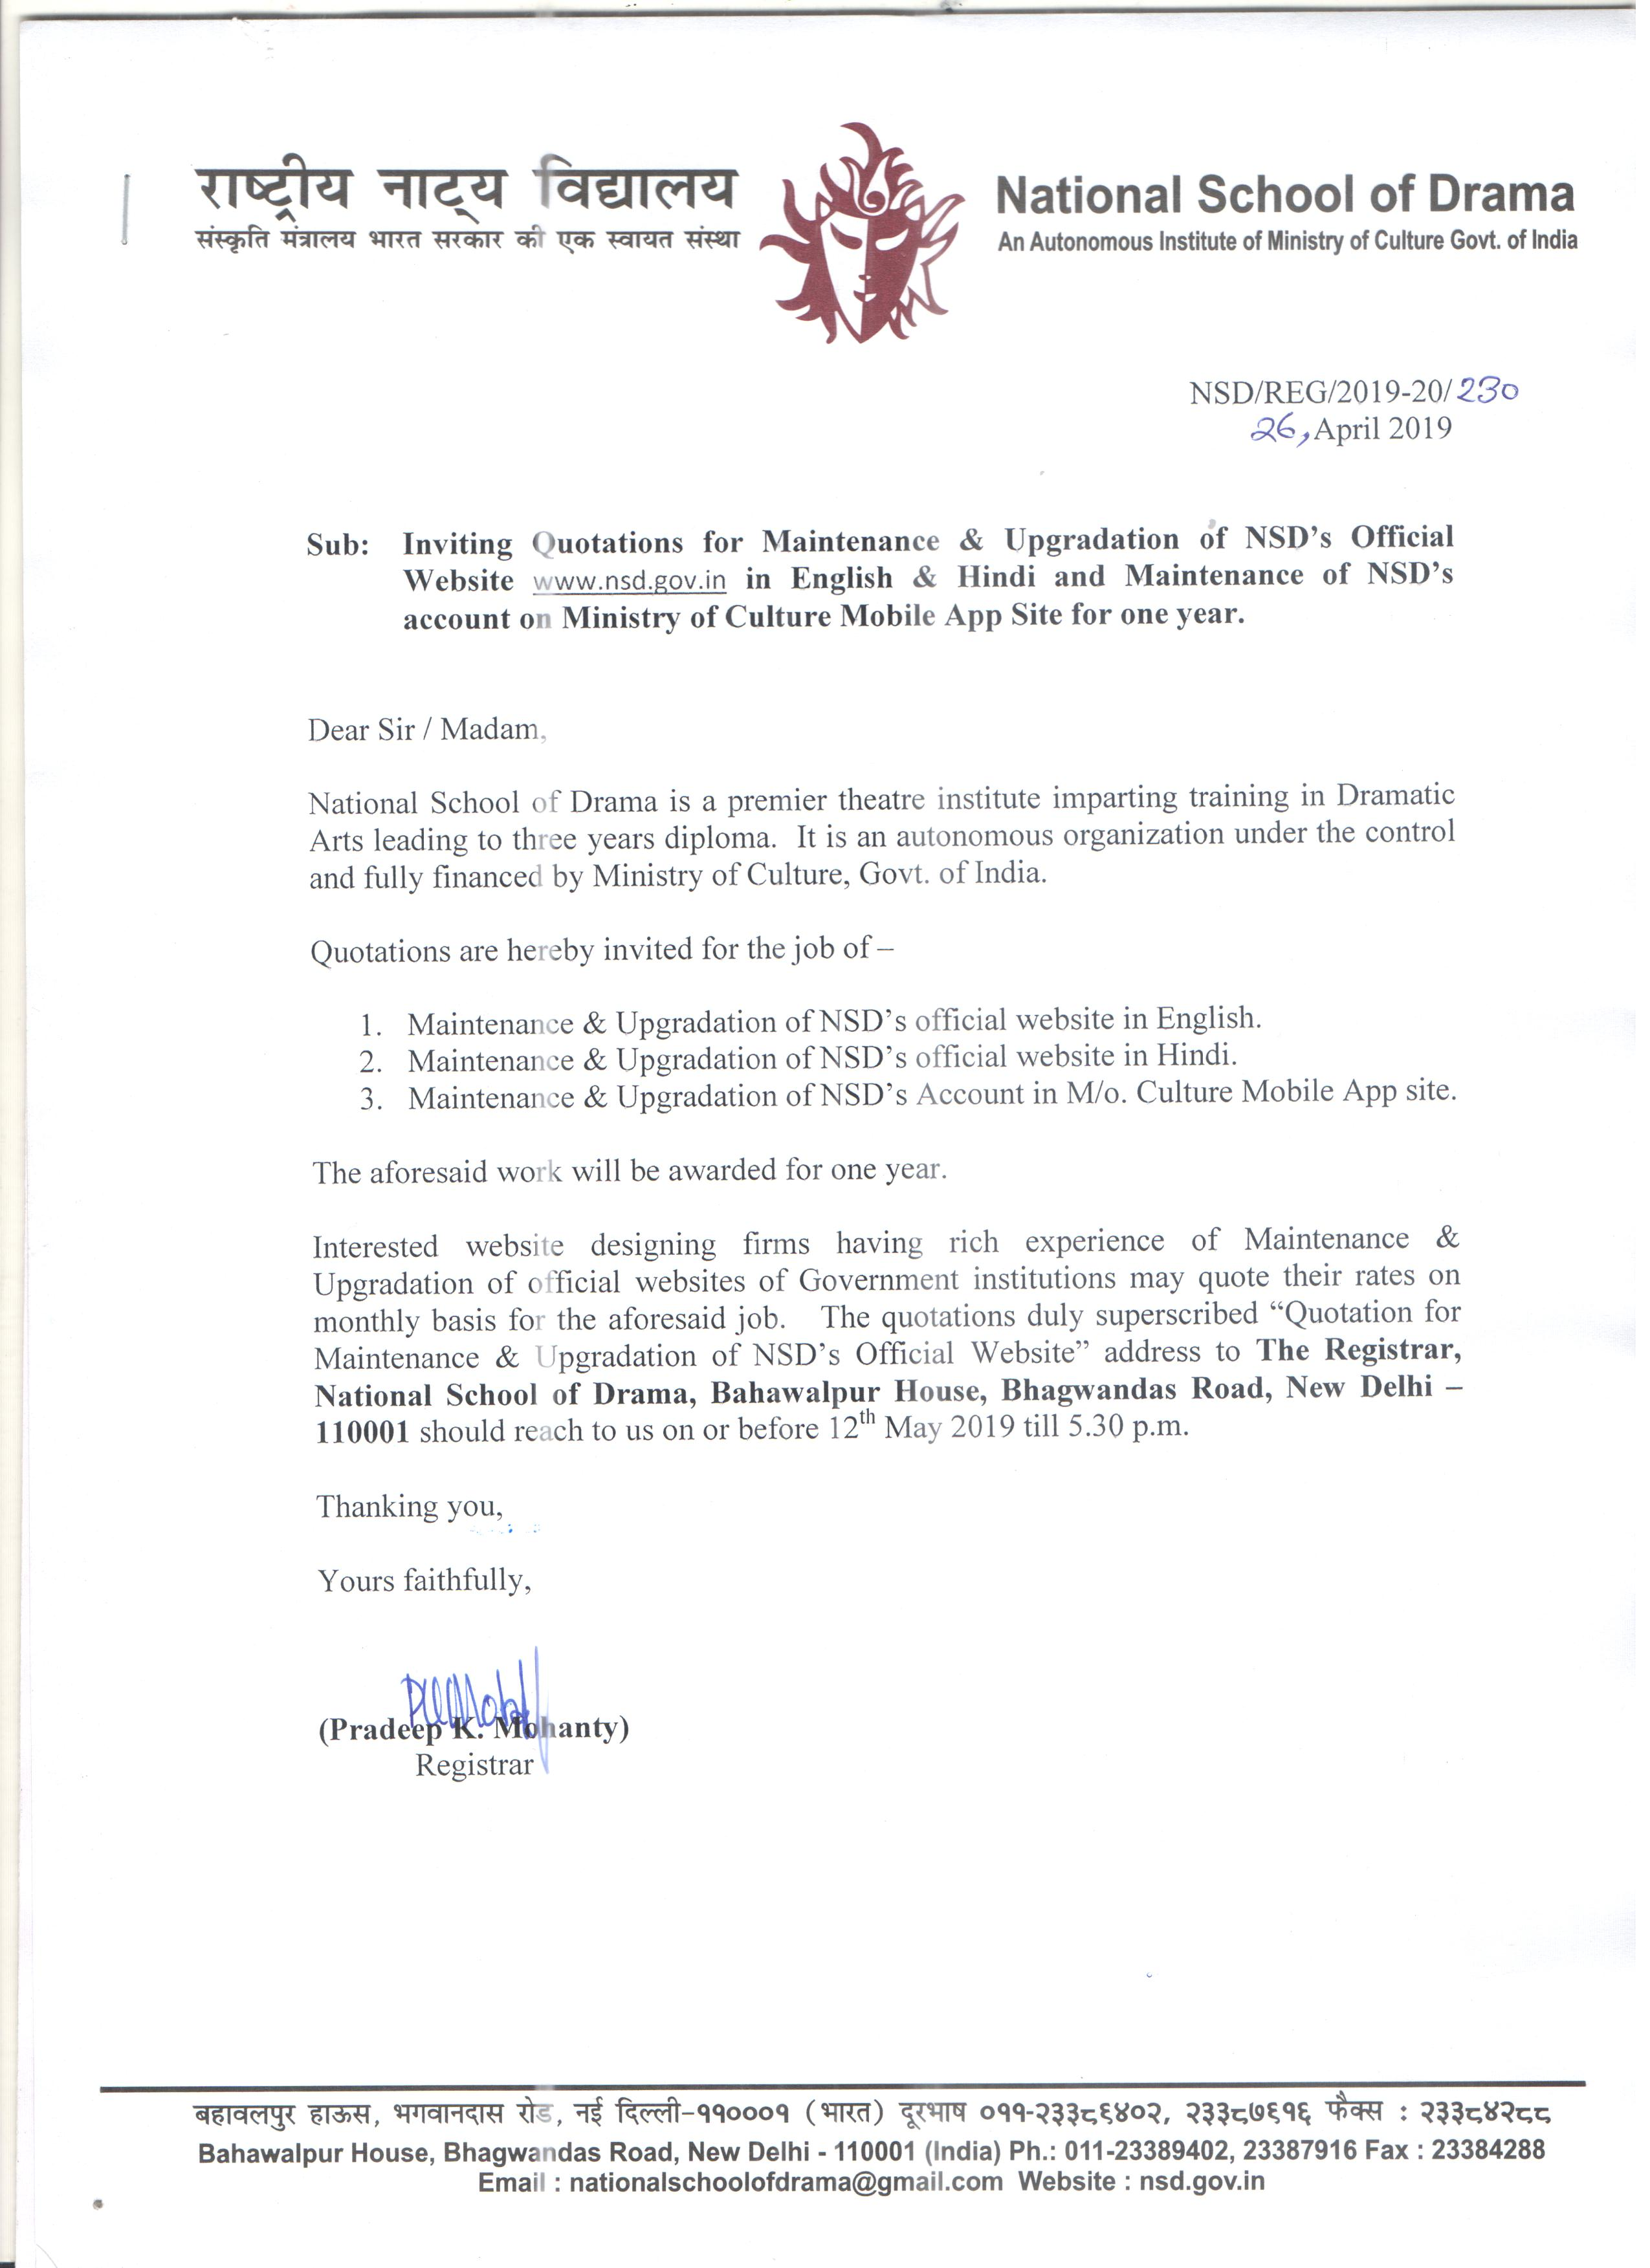 Quotations for Maintenance of NSD's Website